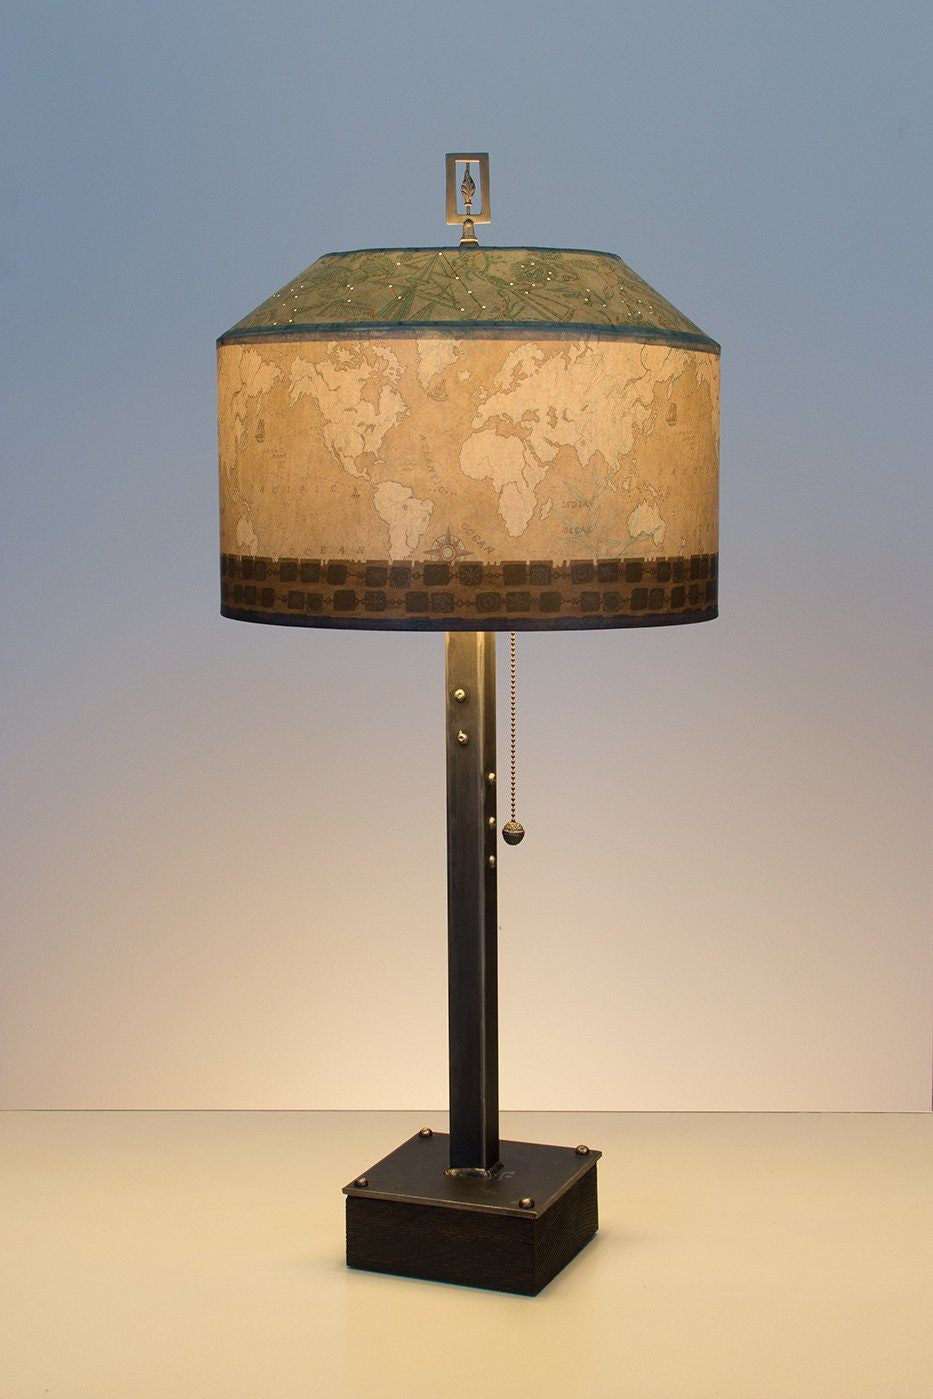 Steel table lamp on wood with medium canopy shade in sand map steel table lamp on wood with medium canopy shade in sand map aloadofball Images